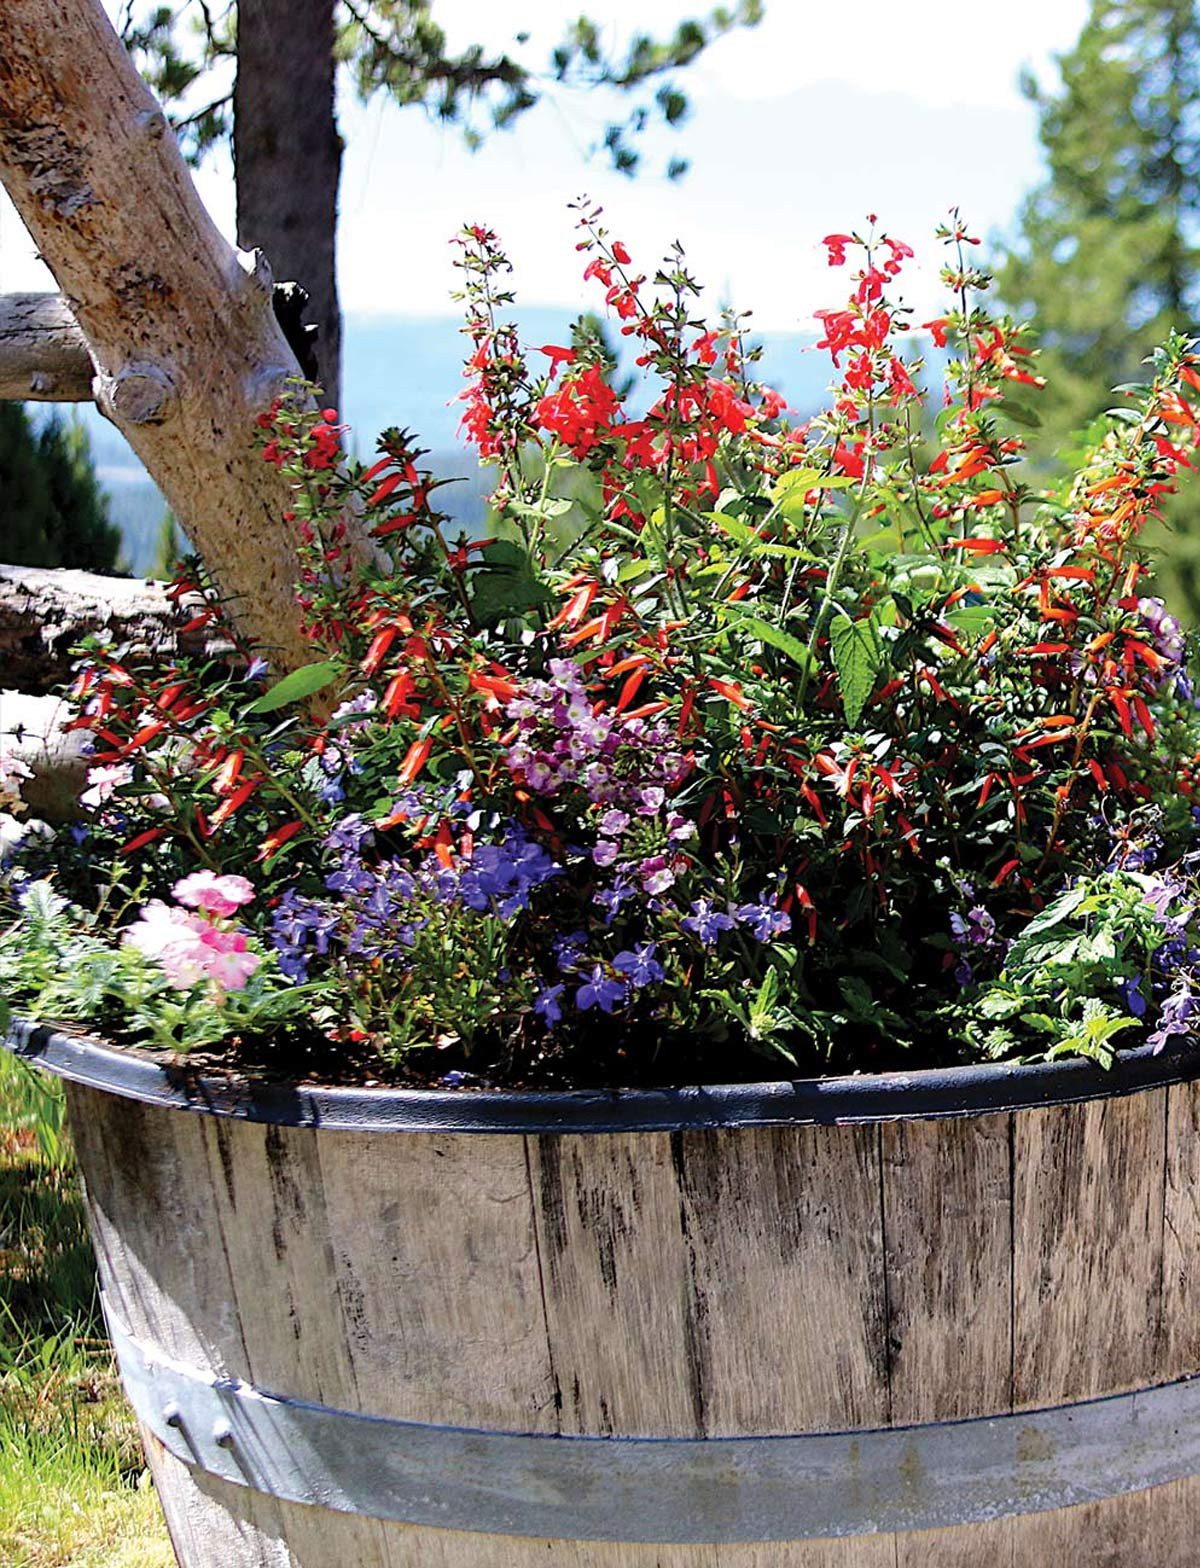 A basket full of wildflowers